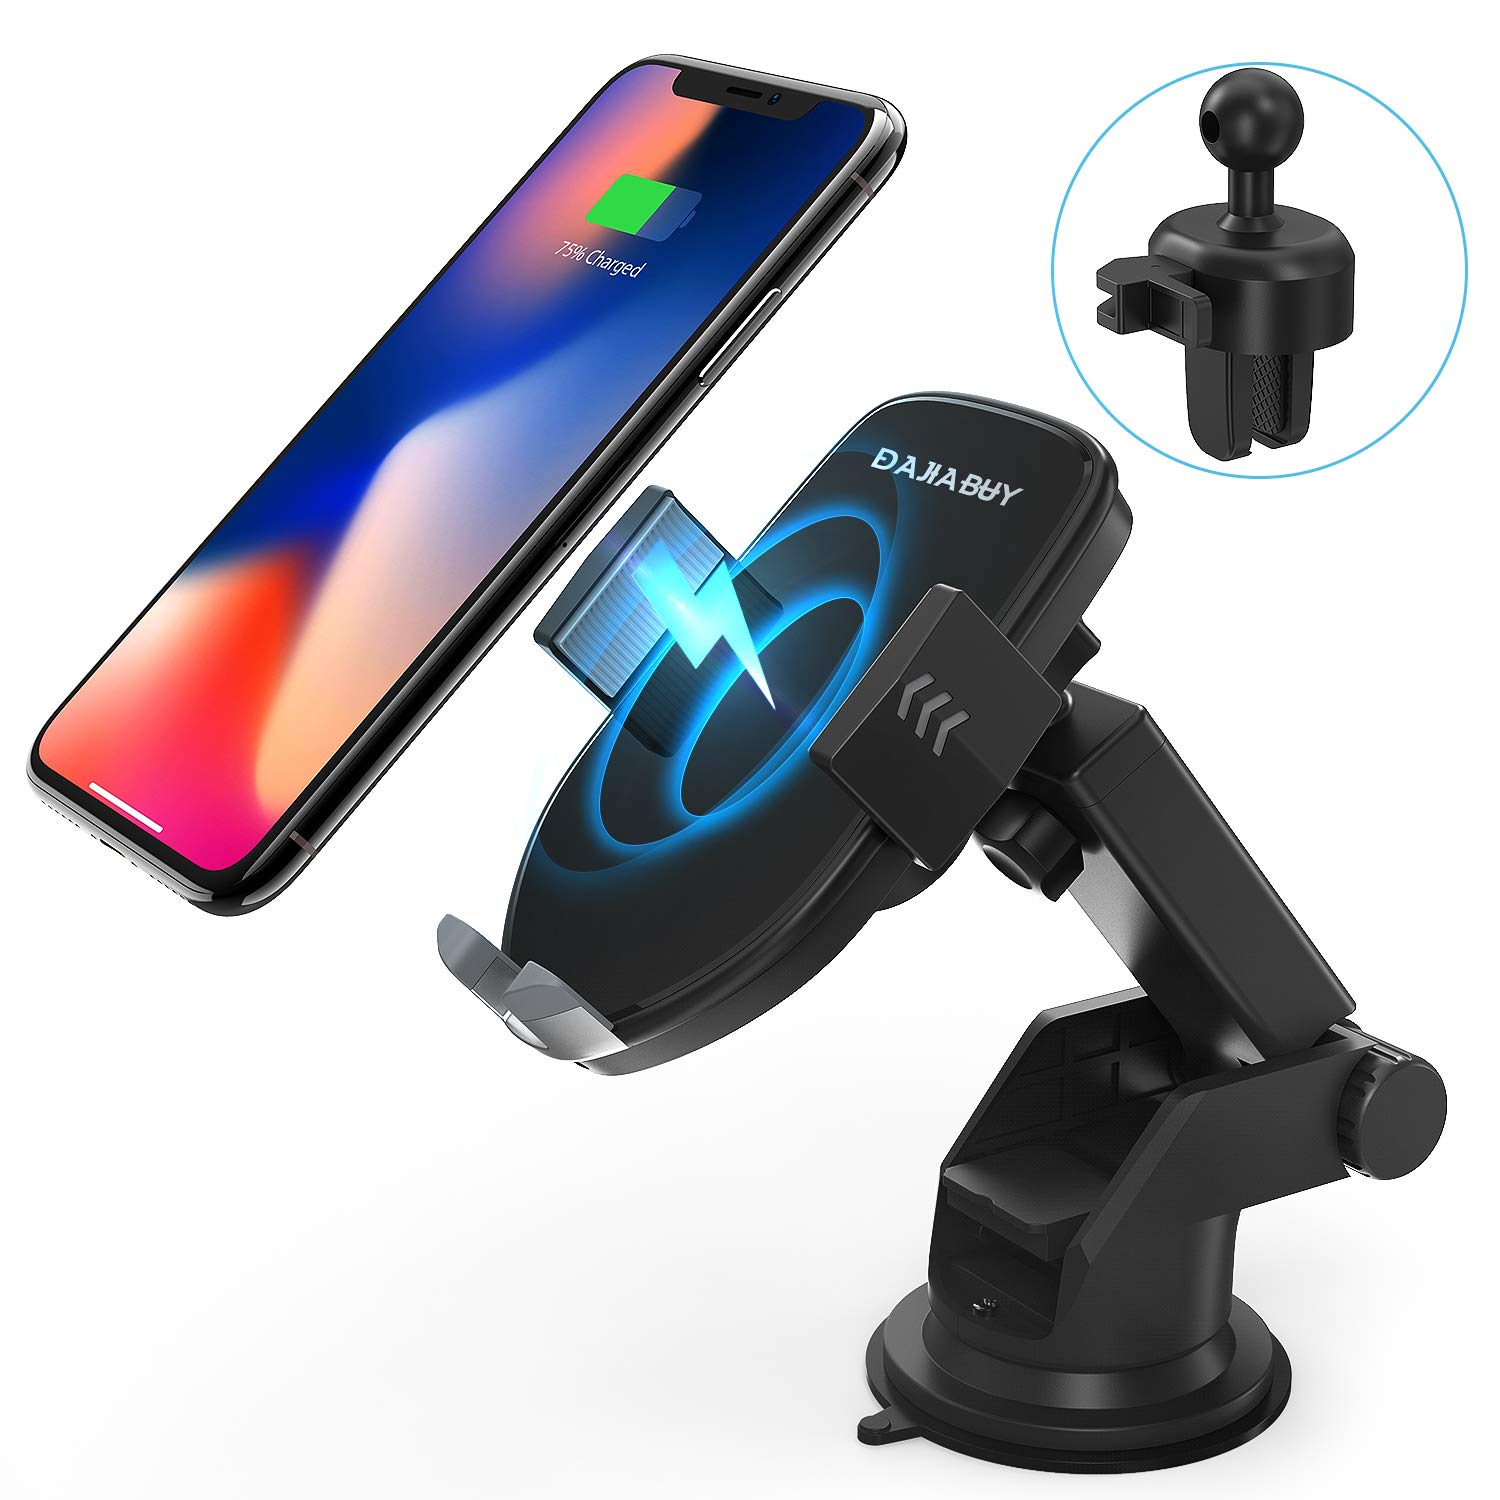 Wireless Car Charger Mount, DAJIABUY Automatic Qi Certified Fast Charging Car Phone Holder for iPhone Xs/Xs Max/XR/X / 8/8 Plus, Samsung Galaxy Note 9/ S9/ S9+/ S8/ S8+ (Black) by DAJIABUY (Image #1)